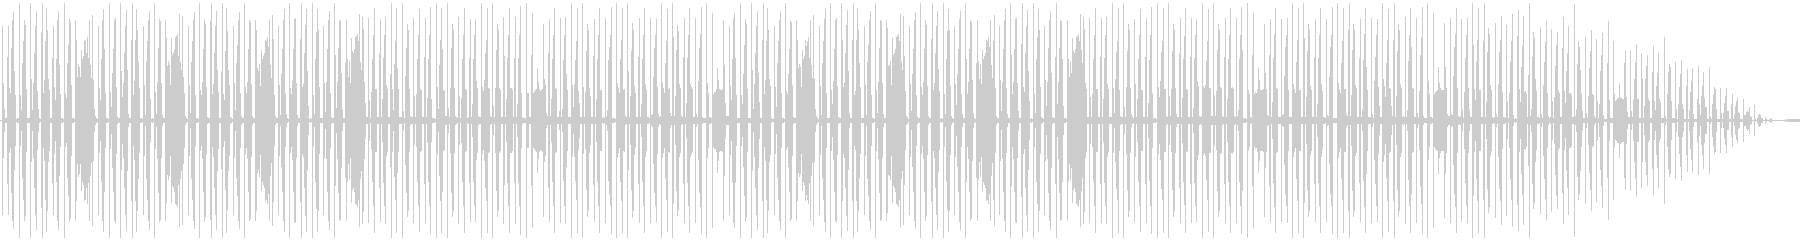 Comical and mysterious BGM's unreproduced waveform